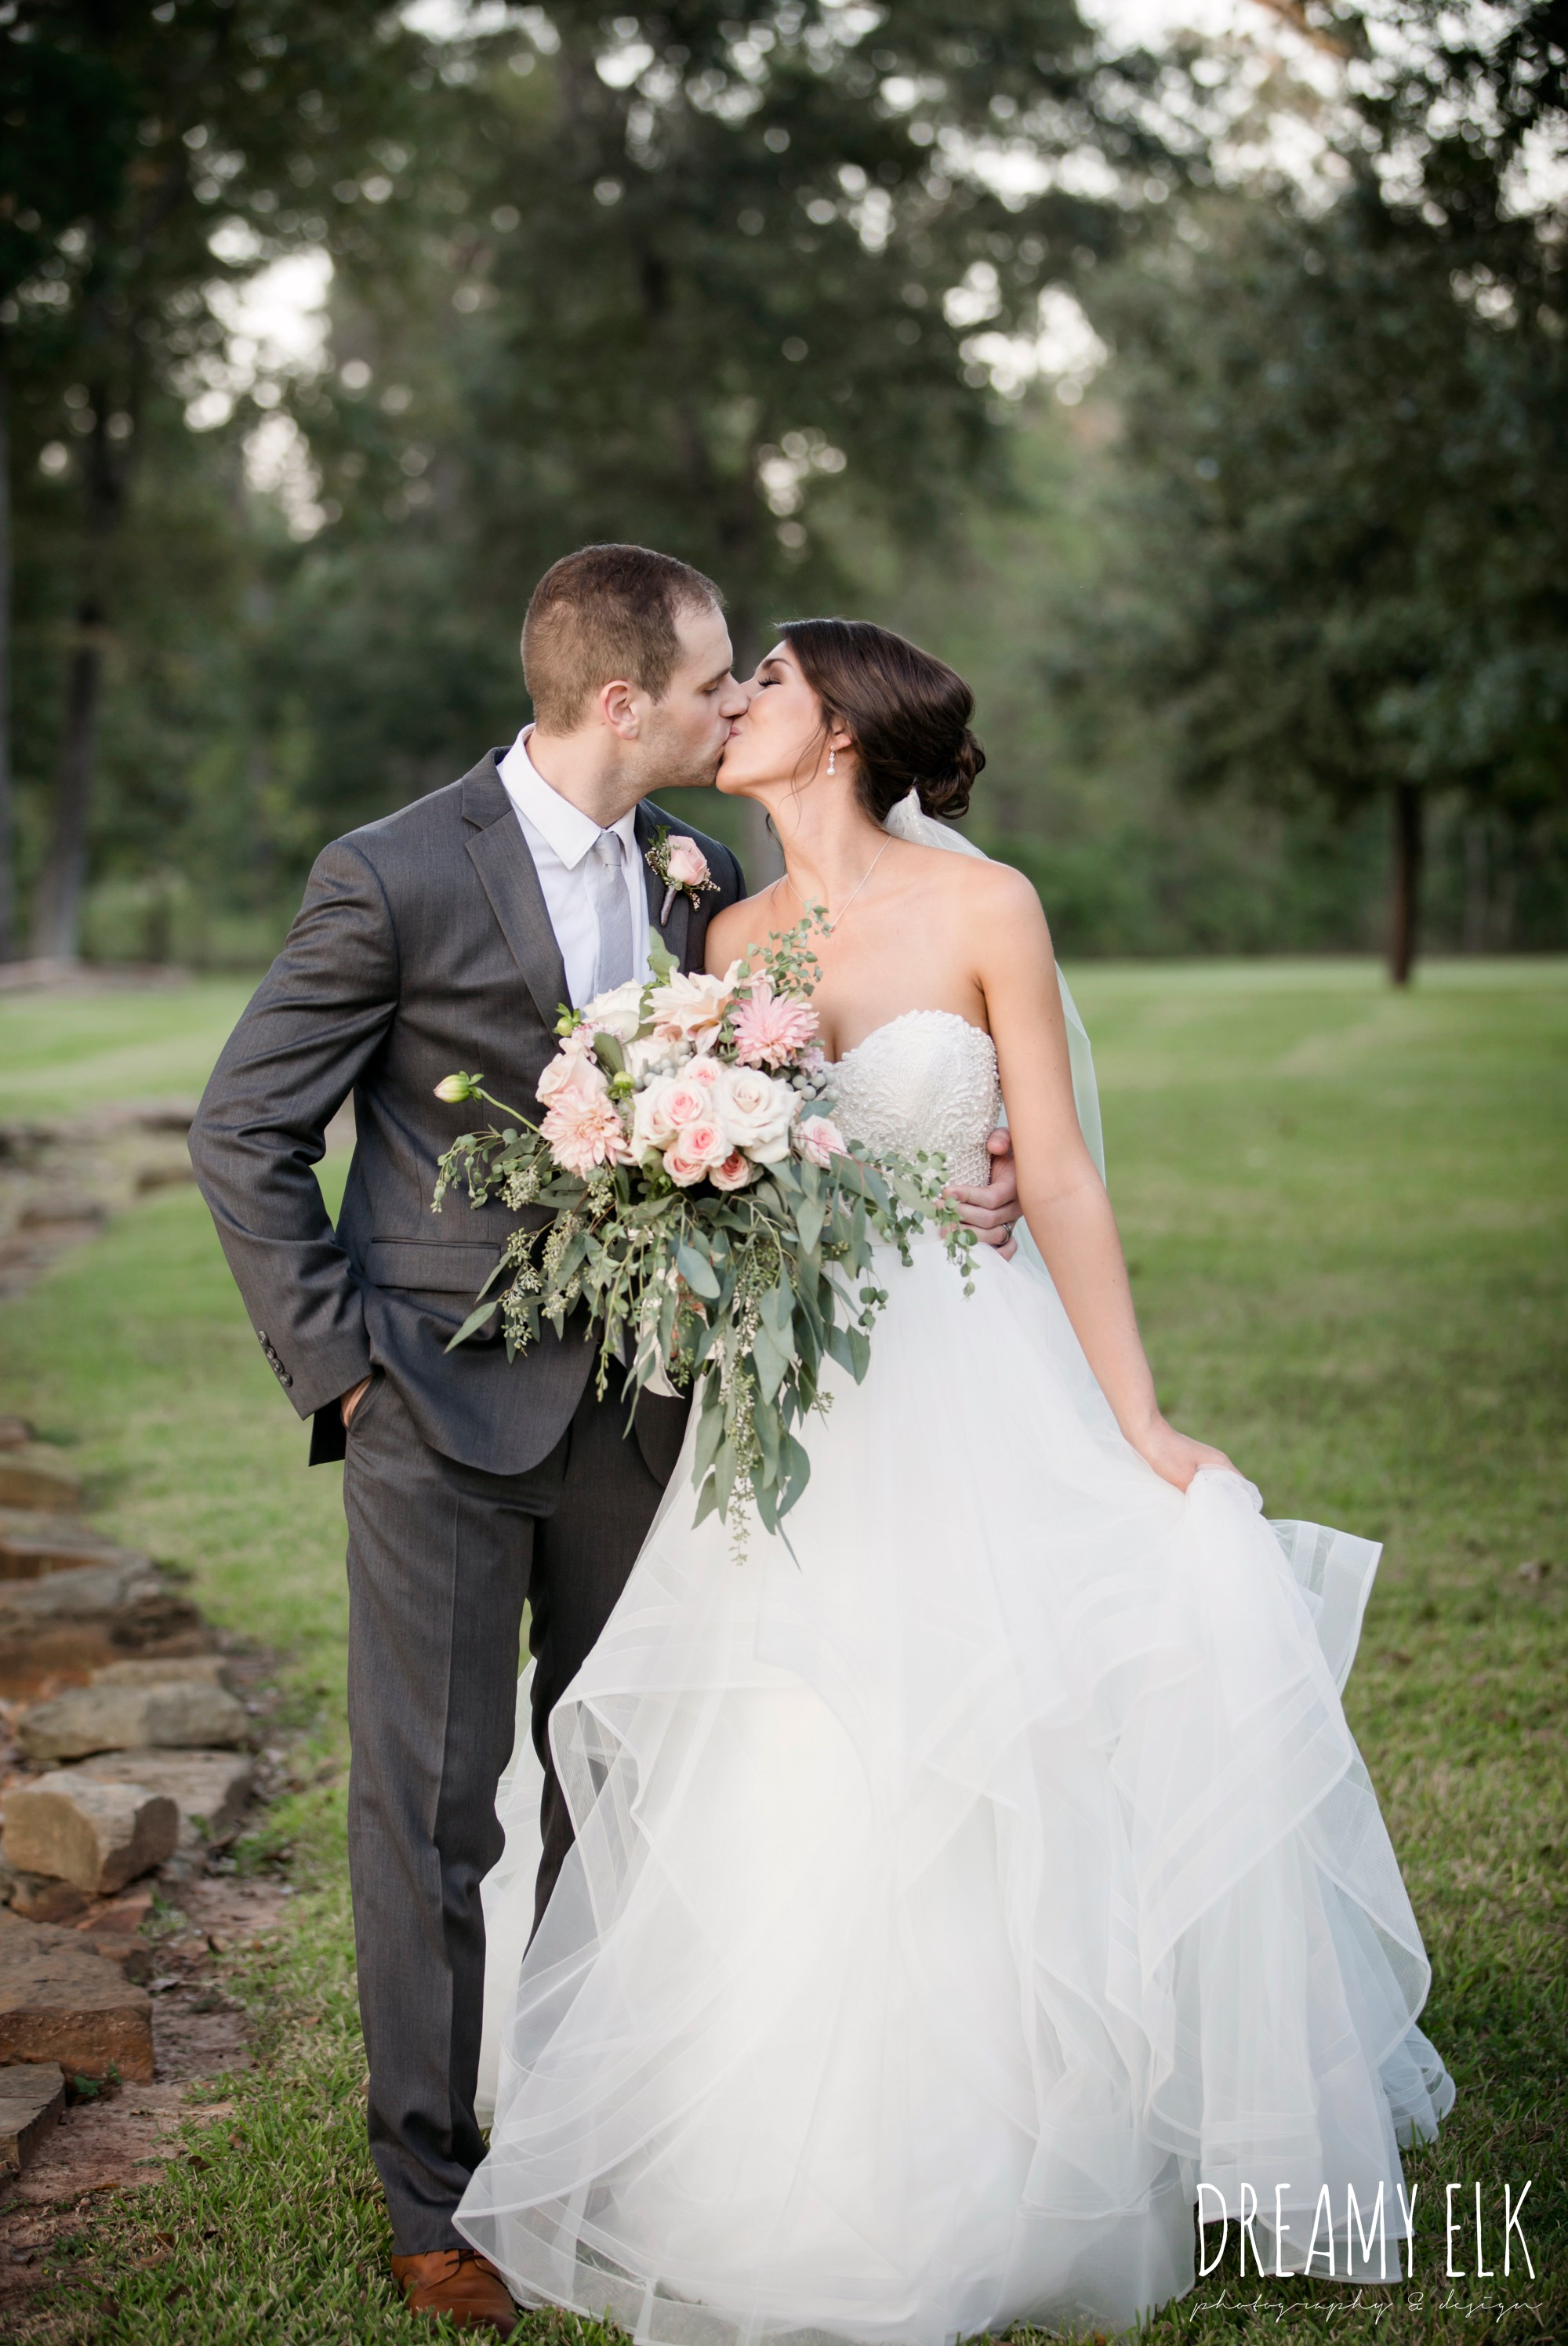 outdoor fall october wedding photo, blush and gray wedding, balmorhea weddings and events, dreamy elk photography and design, austin texas wedding photographer